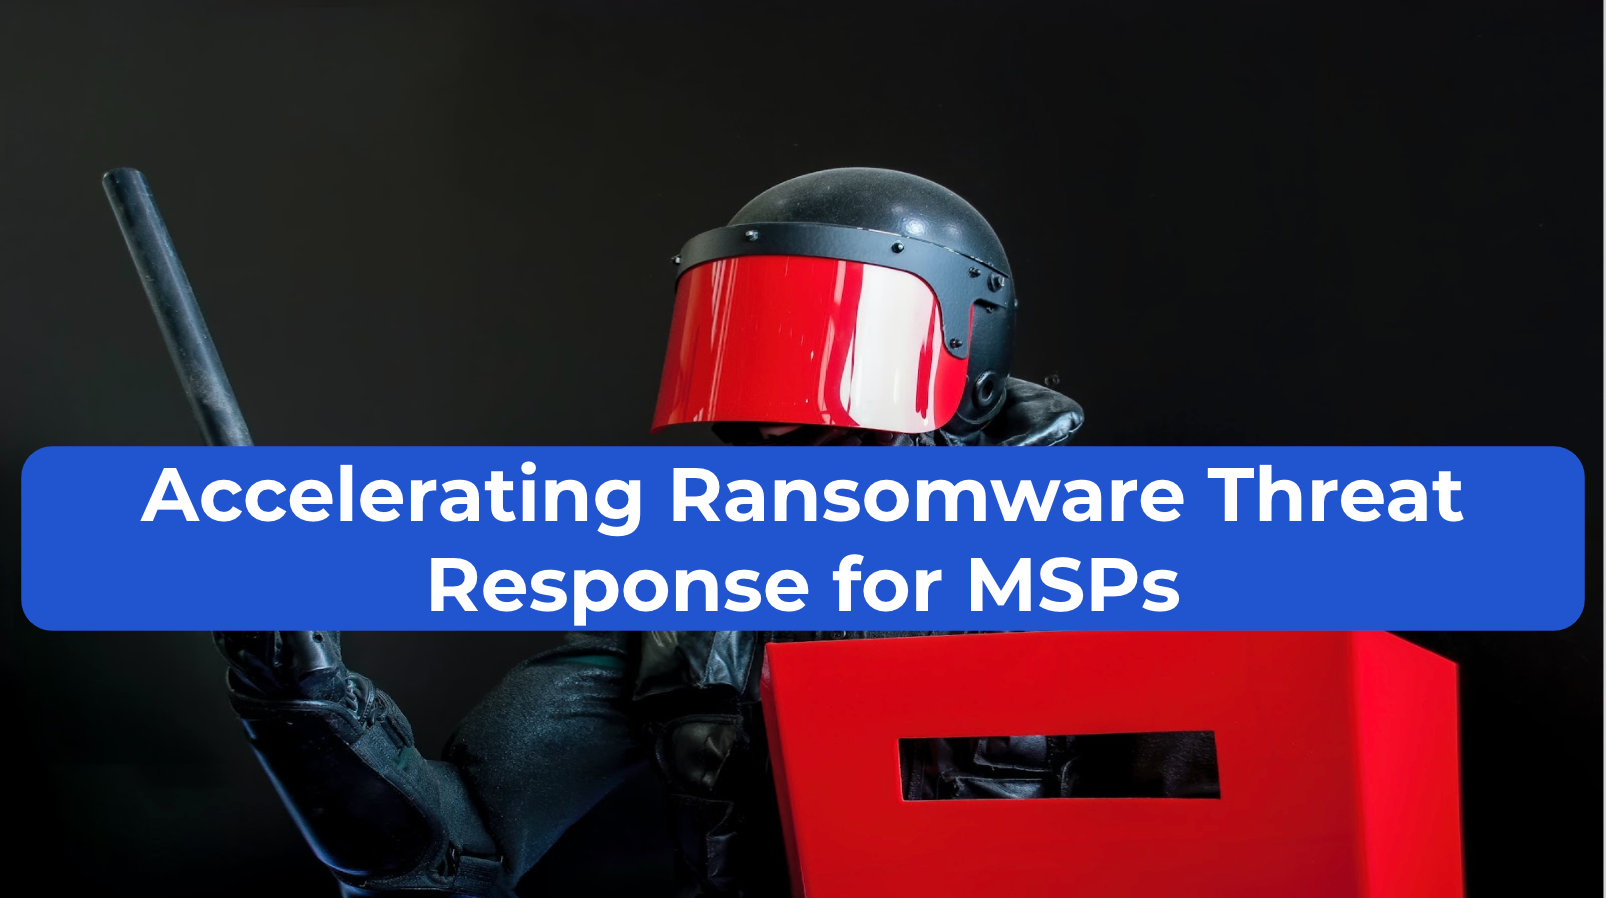 Accelerating Ransomware Threat Response for MSPs